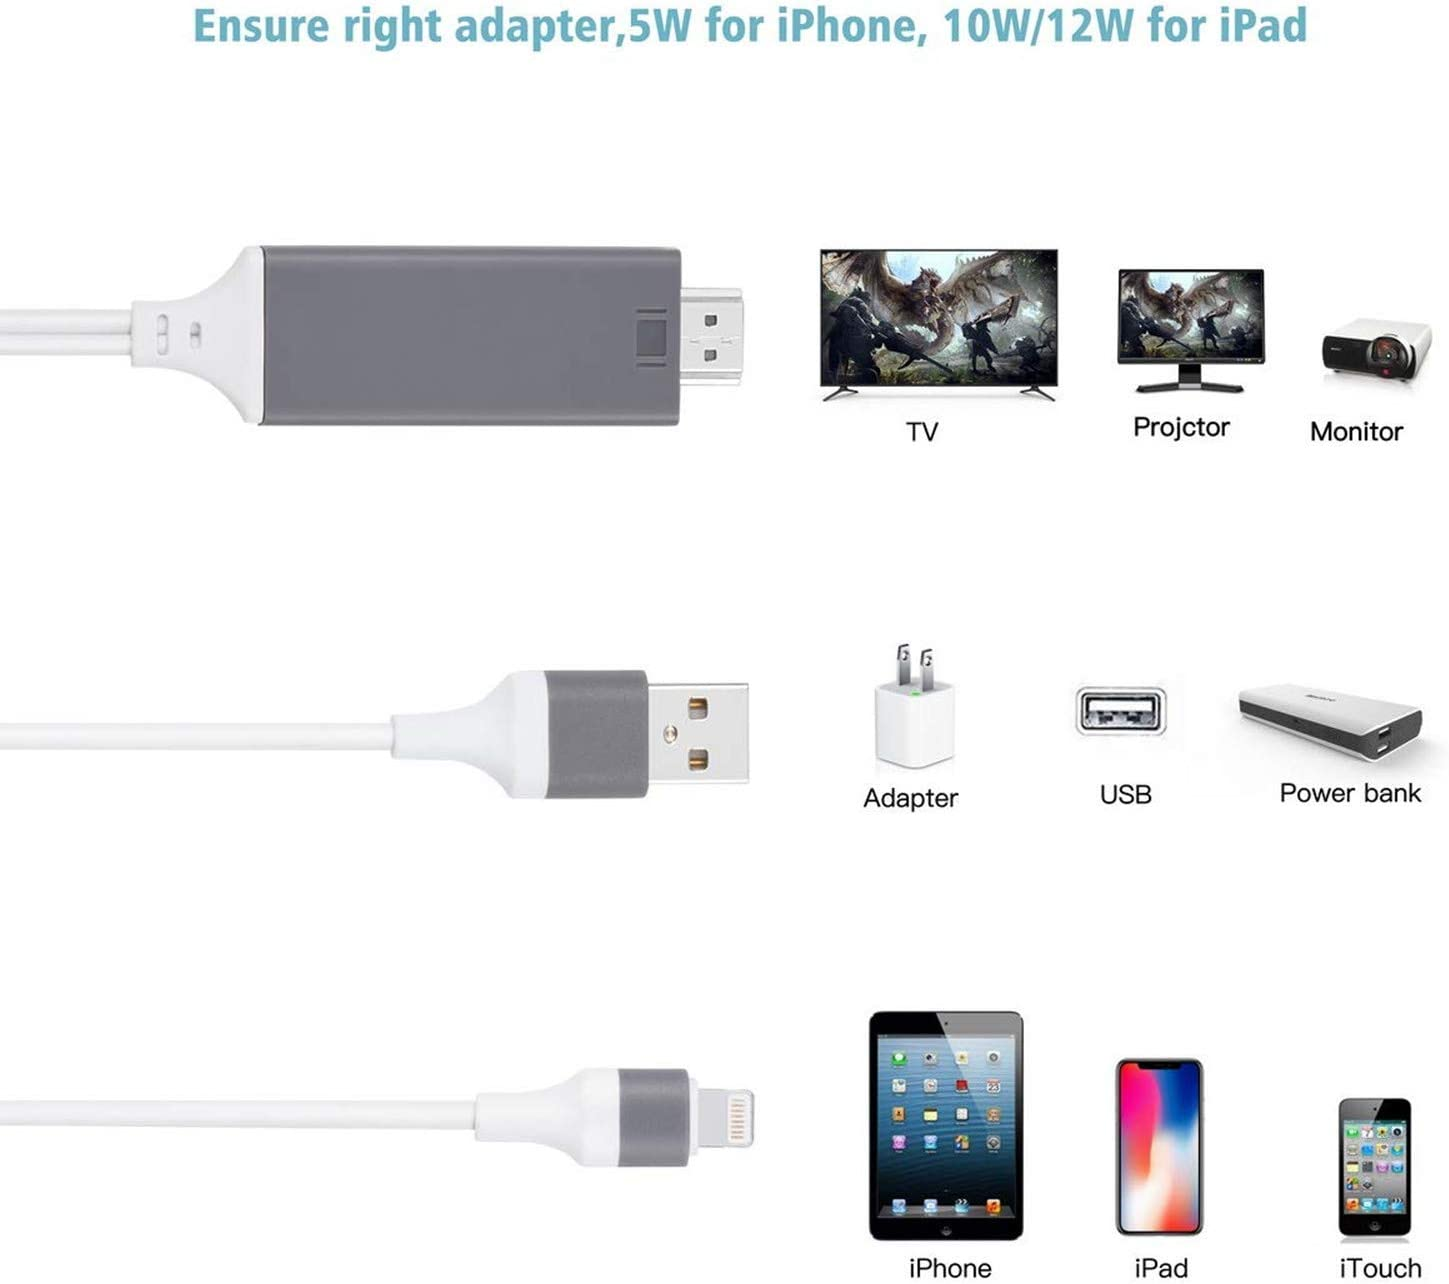 Compatible with iPhone iPad to HDMI Adapter Cable Aictoe 6.6ft Digital AV Adapter Cord Support 1080P HDTV Compatible with iPhone 11 Pro Xs MAX XR X 8 7 6s Plus iPad to TV Projector Monitor